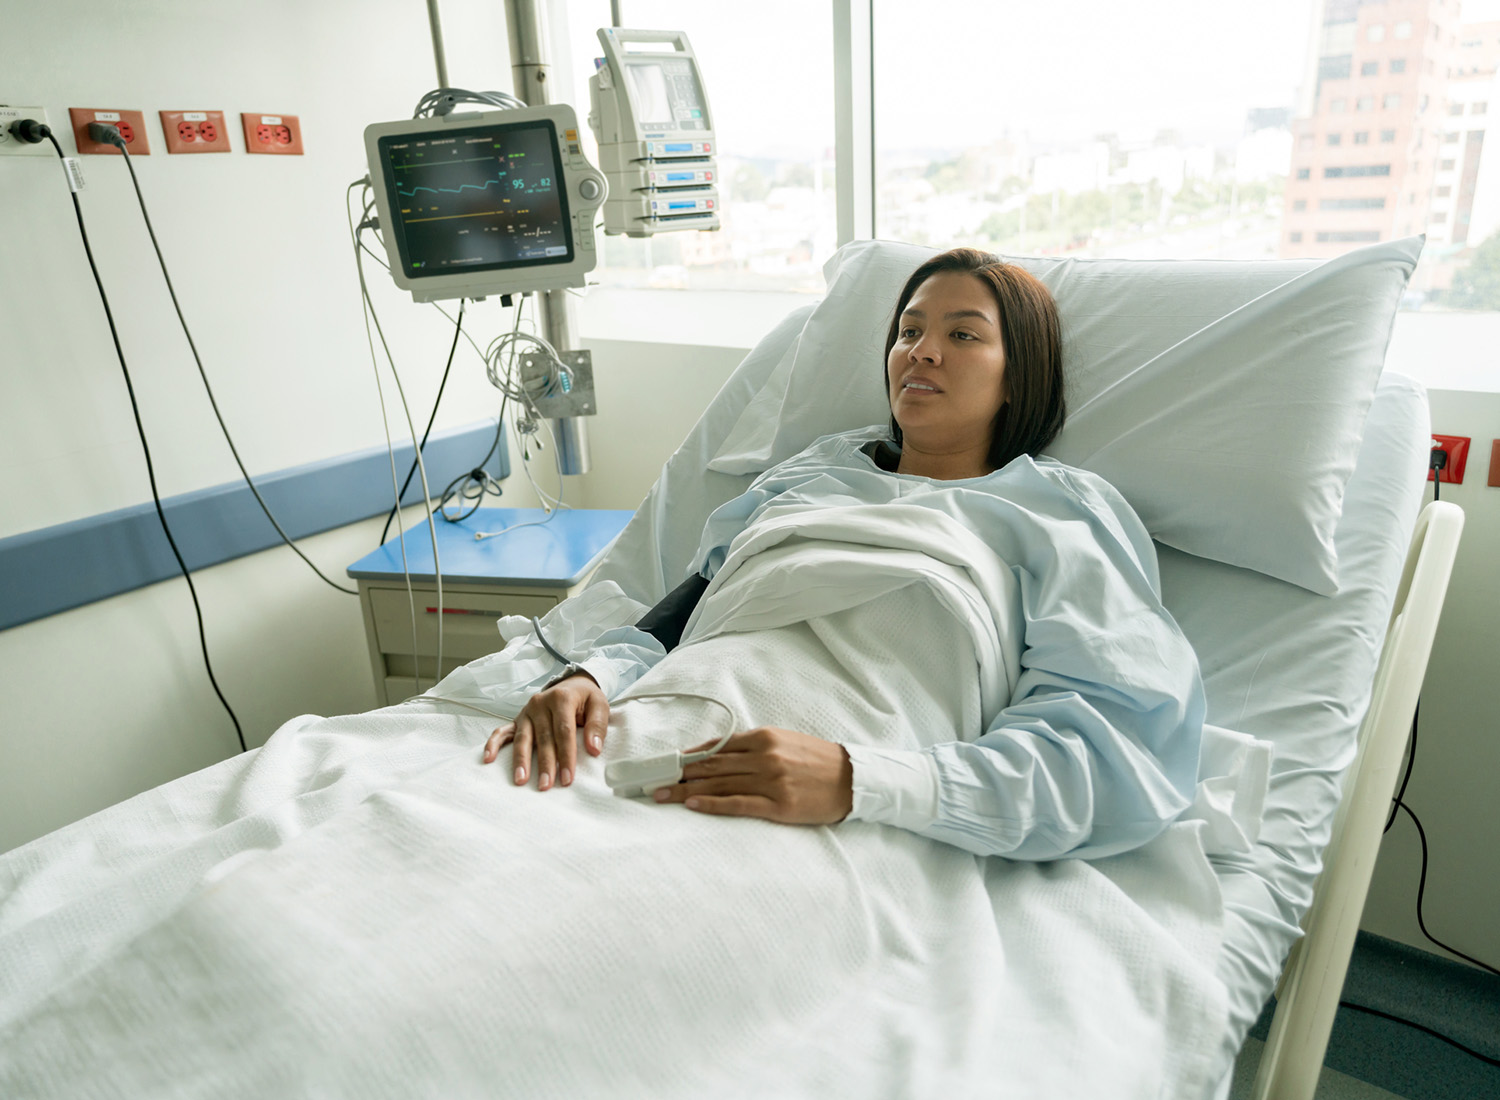 woman in hospital bed waiting for colonoscopy exam